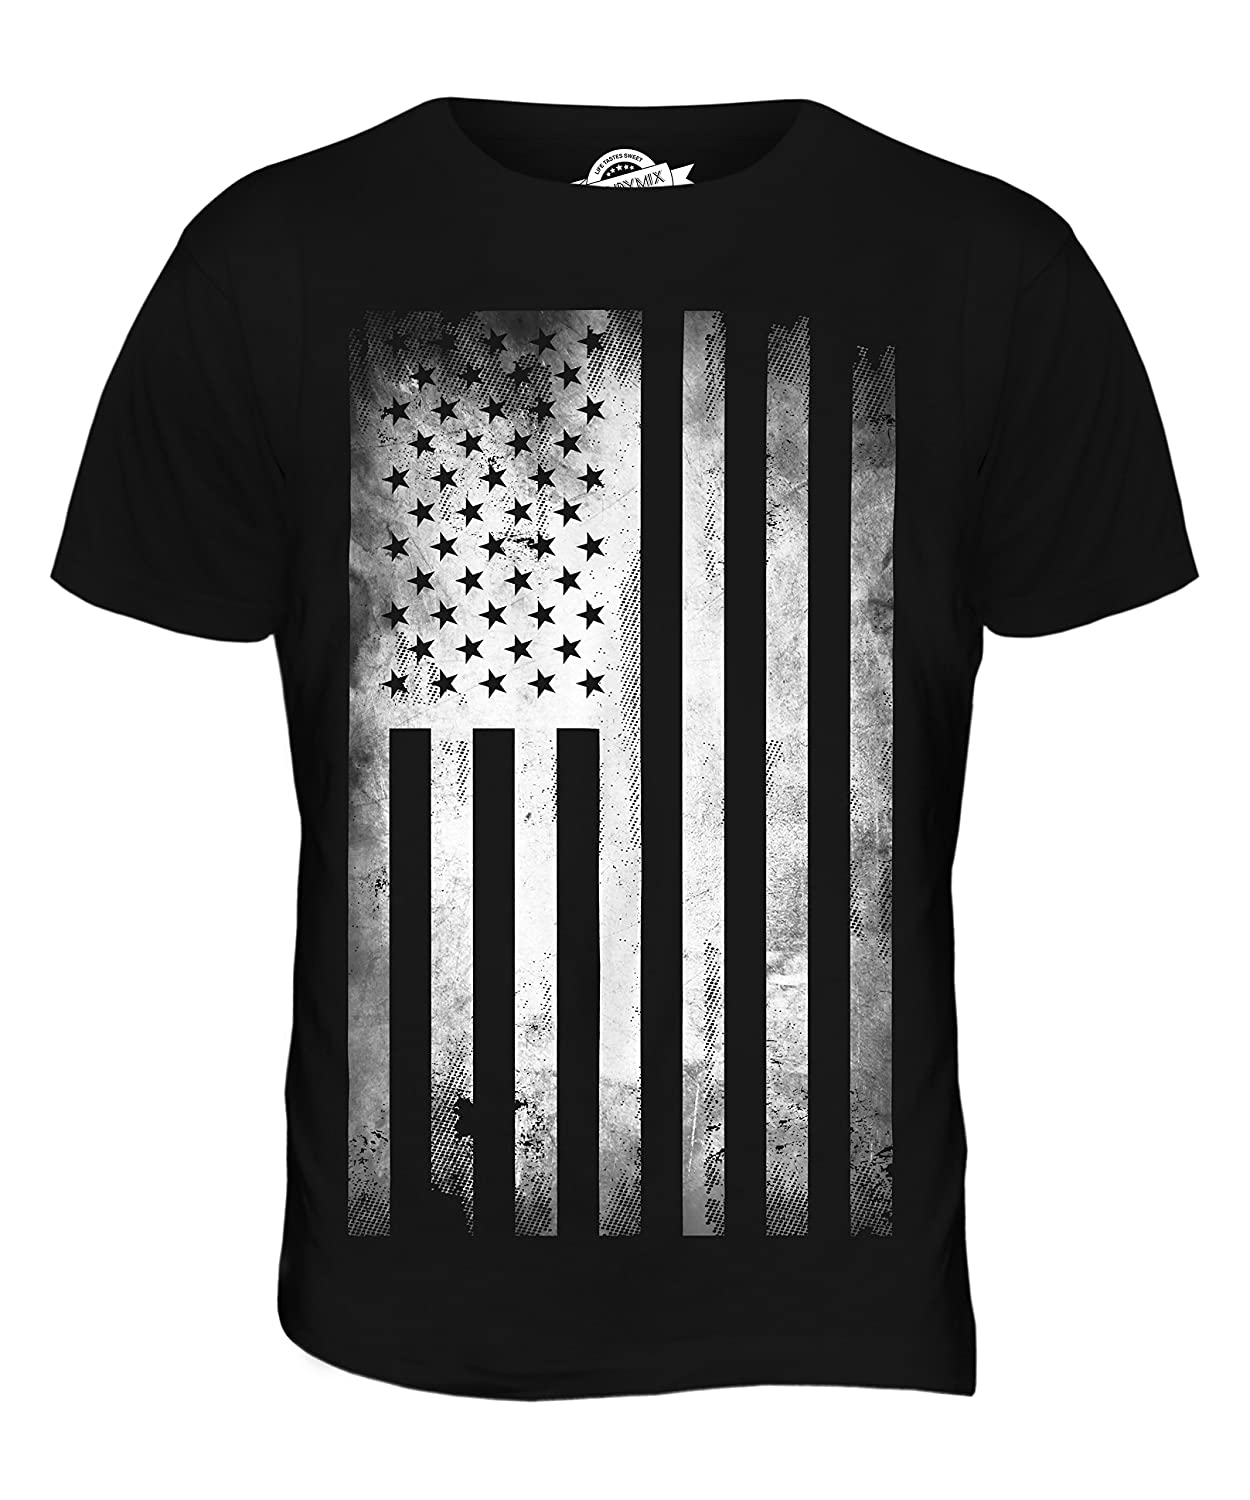 Black flag t shirt uk - Candymix Usa Stars And Stripes Faded Flag Print Mens T Shirt Top T